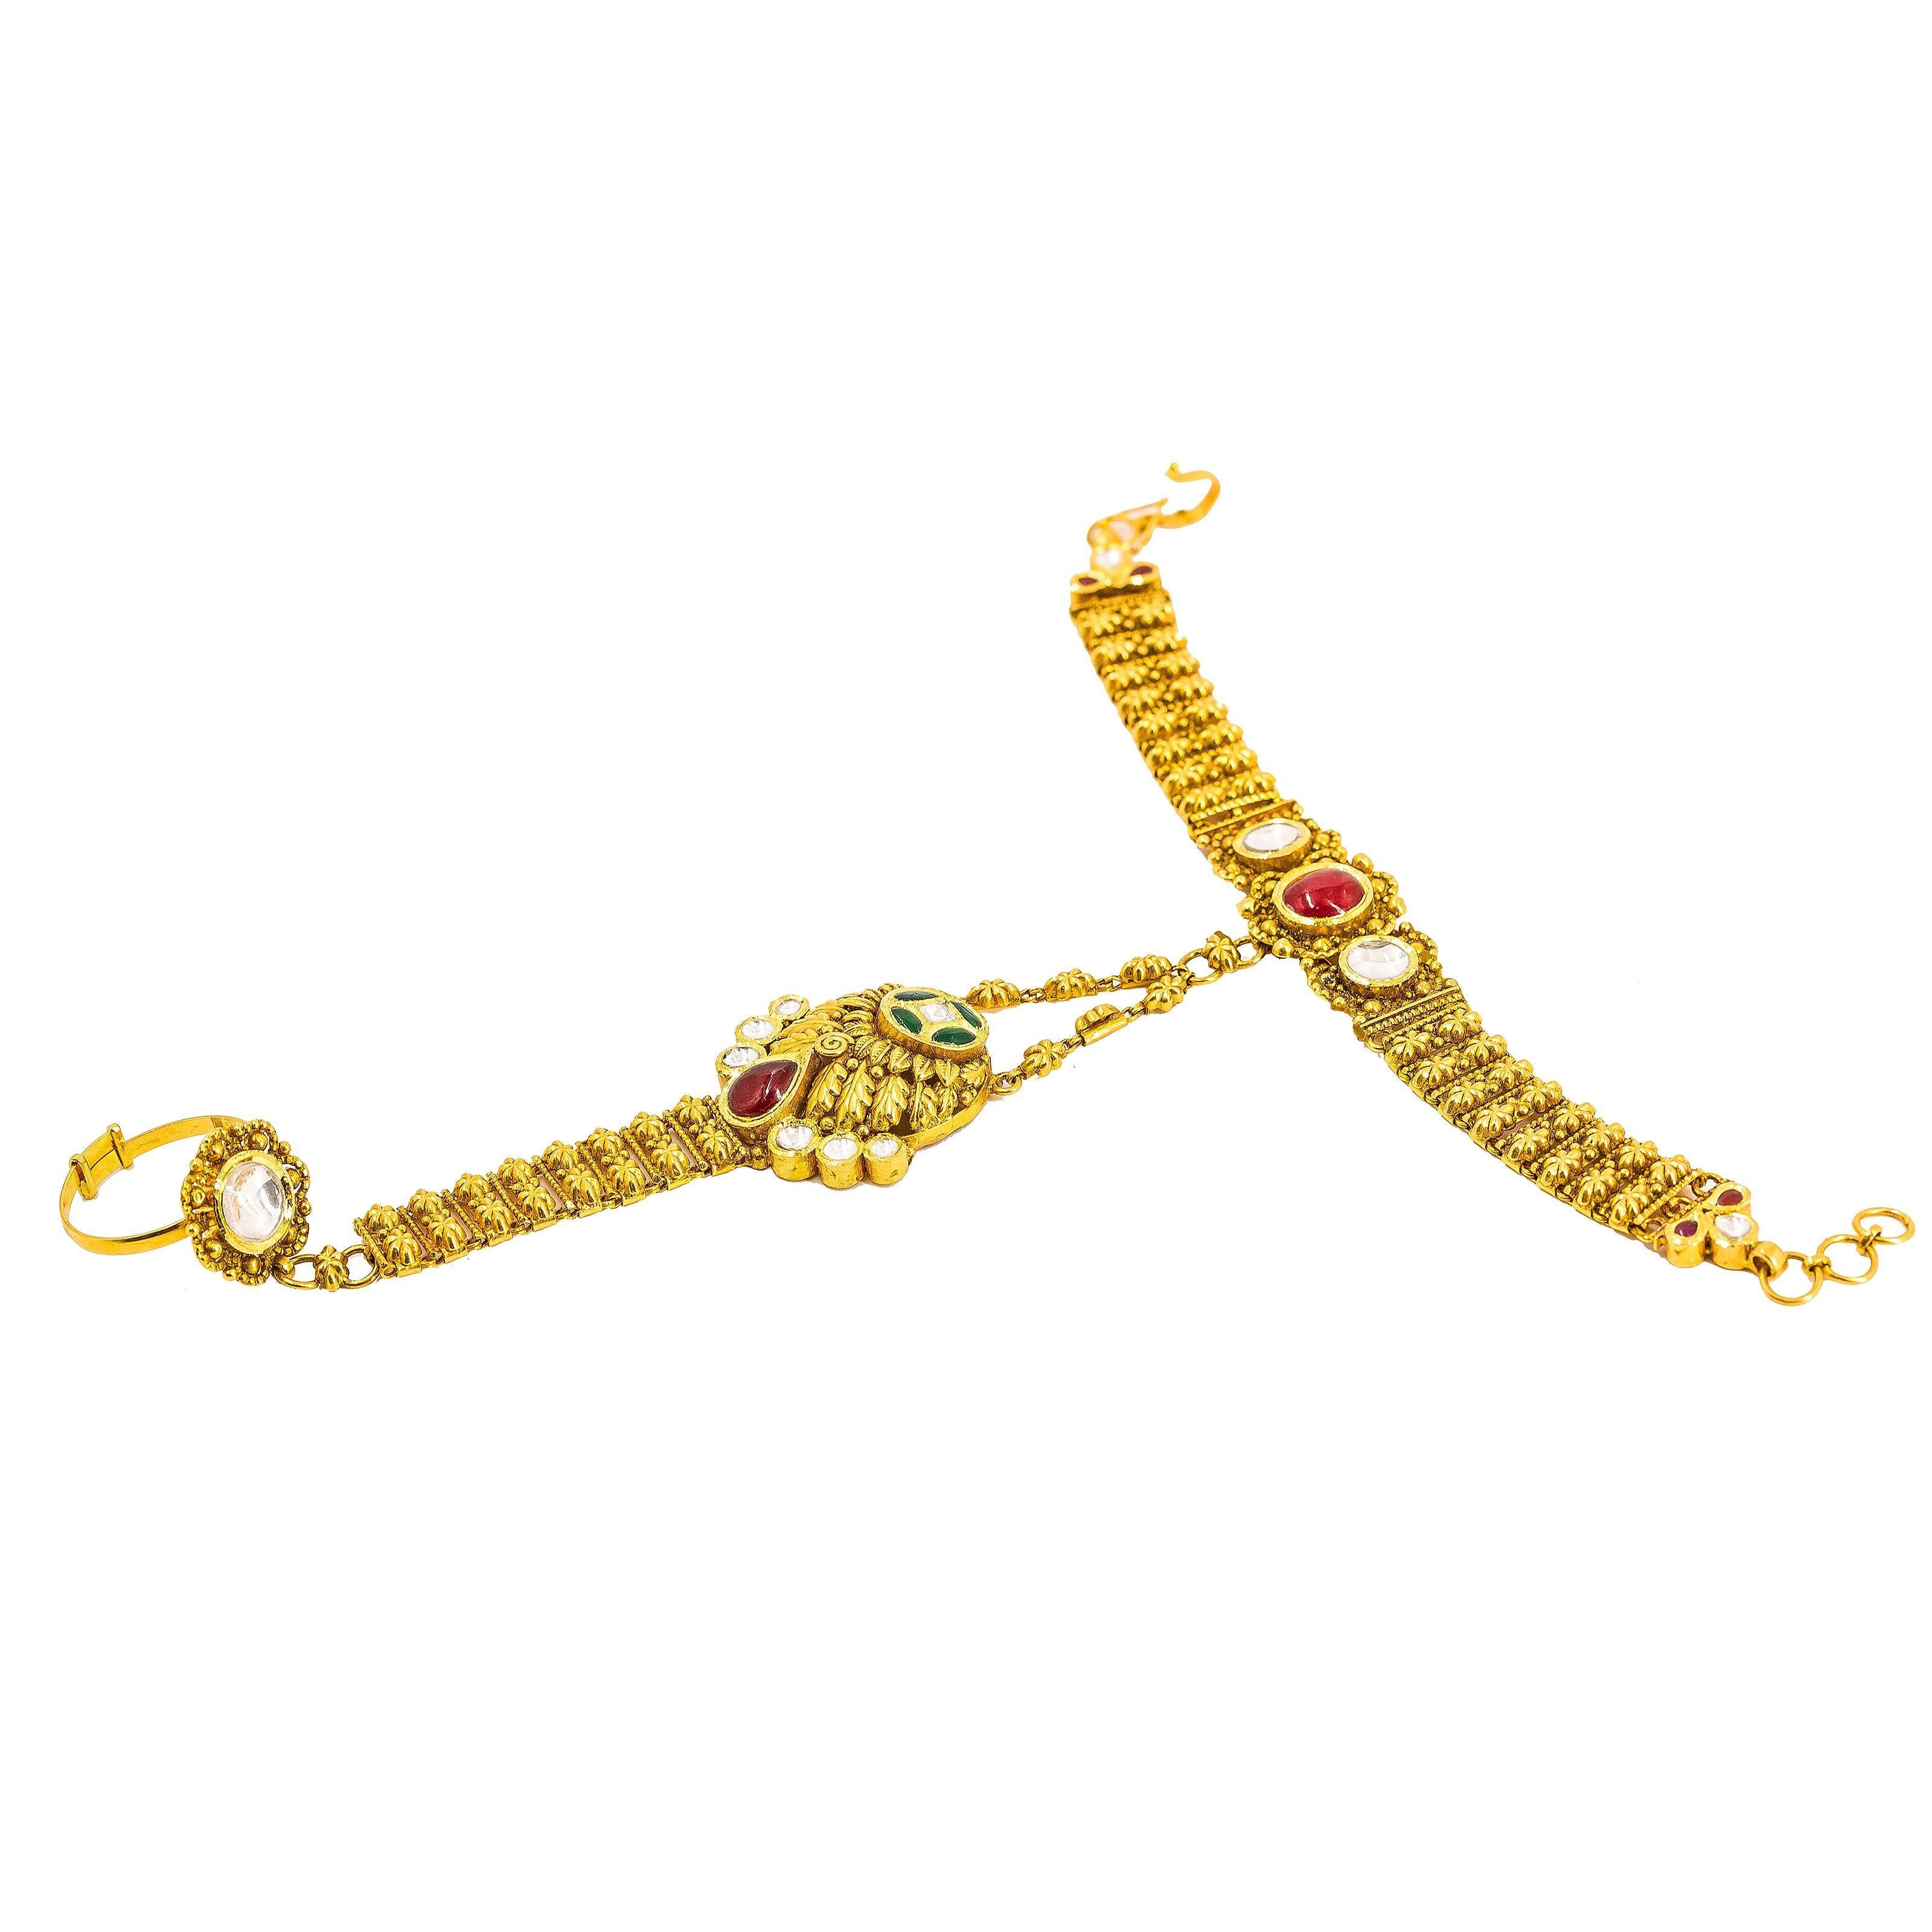 48b6506095a01 22K Yellow Gold Panja Finger Bracelet W/ Kundan & Hollow Round Pendant on  Flower Accented Chain